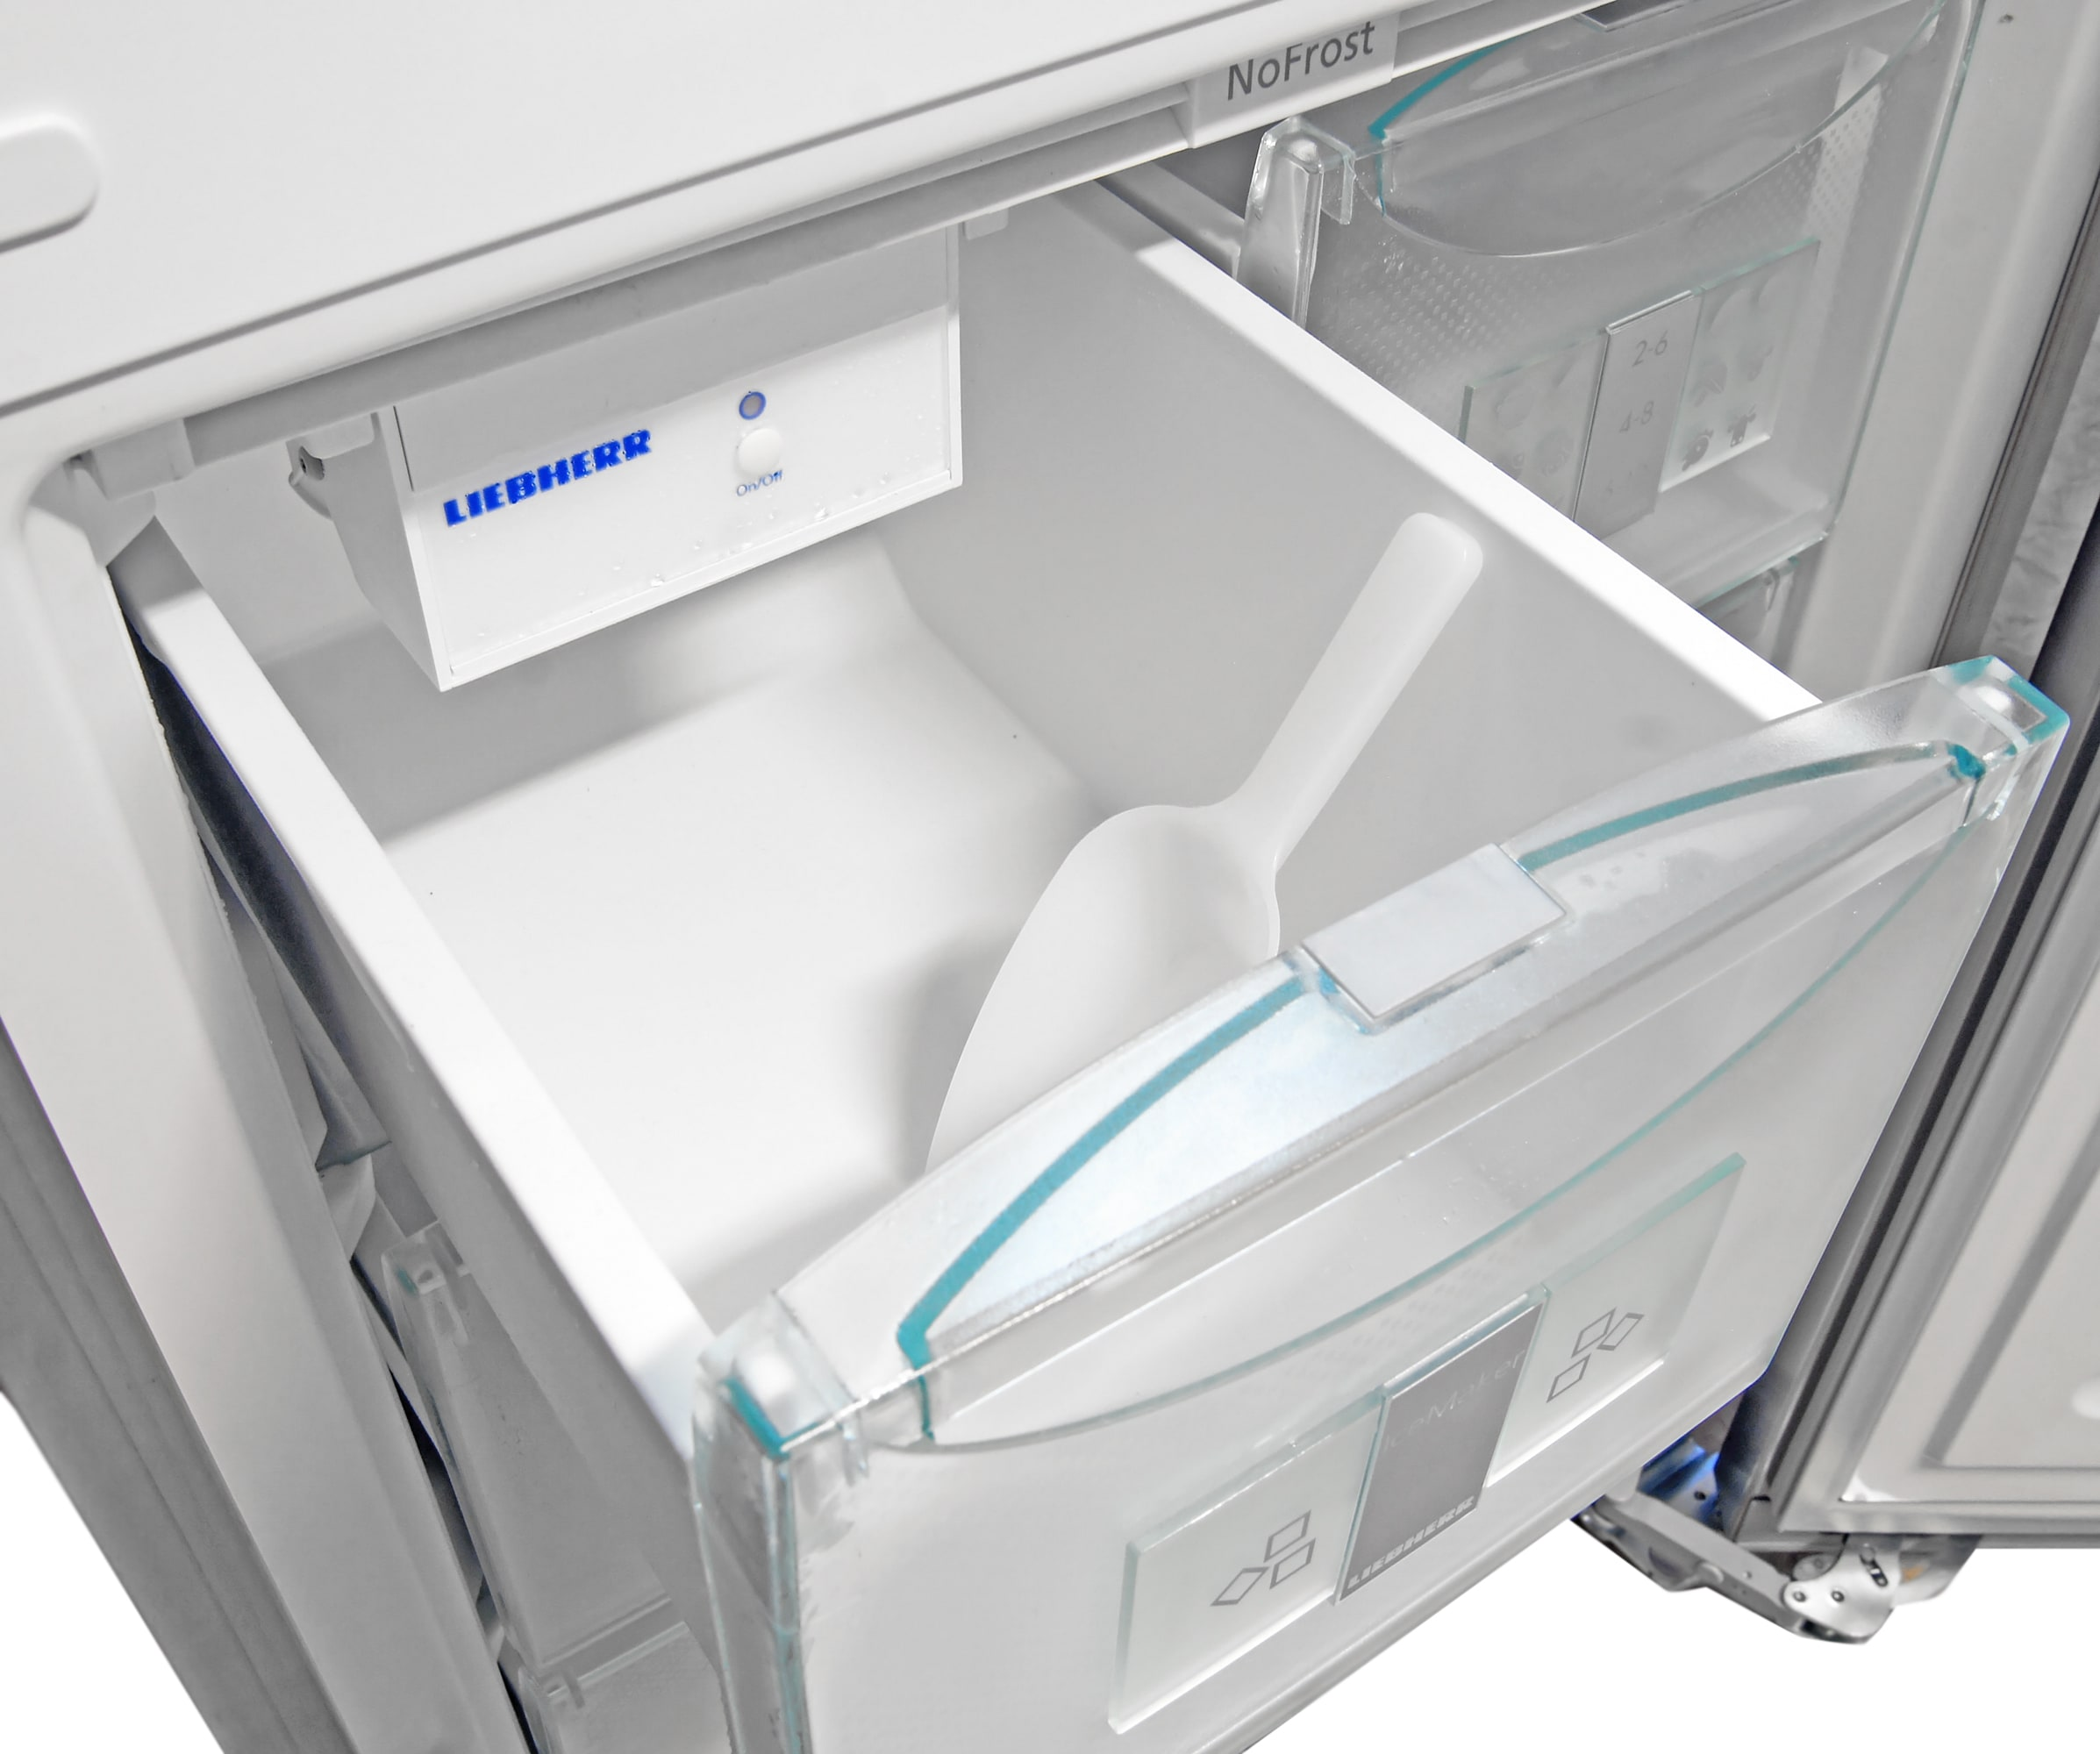 Instead of a separate bucket, the Liebherr CS1360's entire upper left freezer drawer can be used as ice storage—complete with plastic scoop.